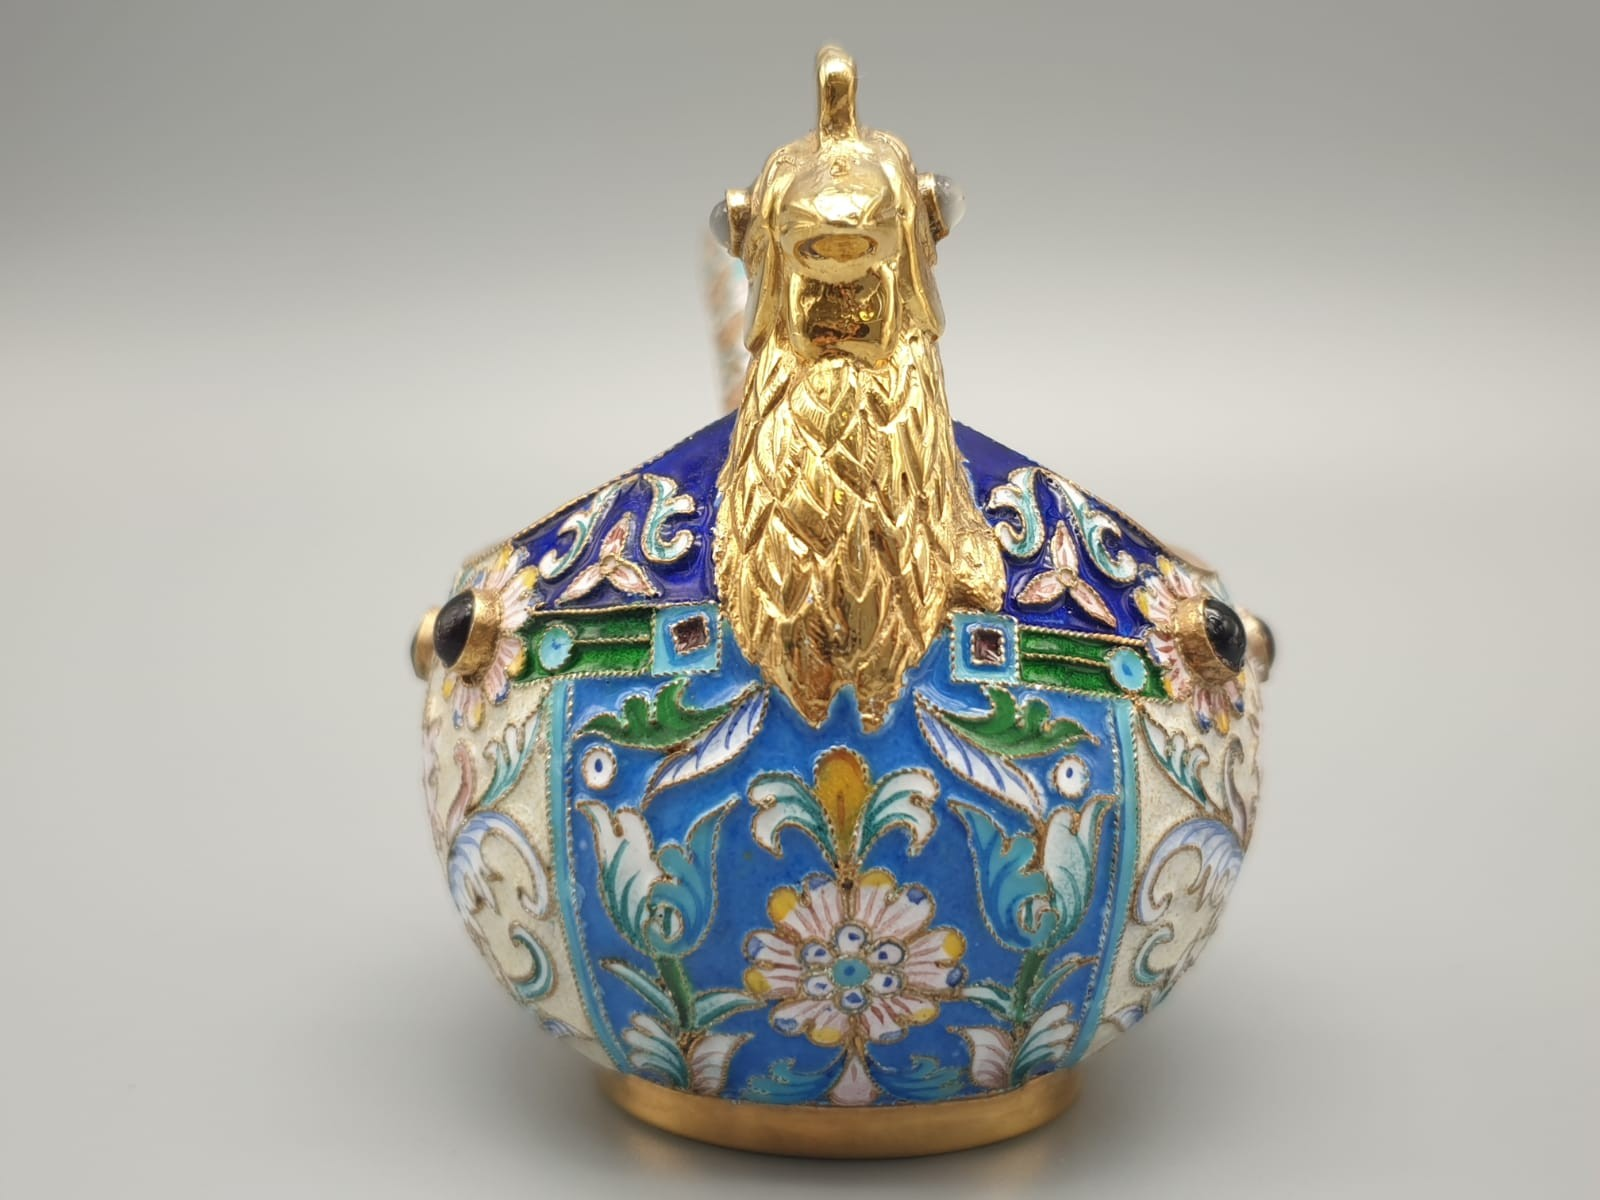 Pair of Russian 20th century silver enamel gemset kavosch bowl in the form of birds, an exquisite - Image 5 of 29